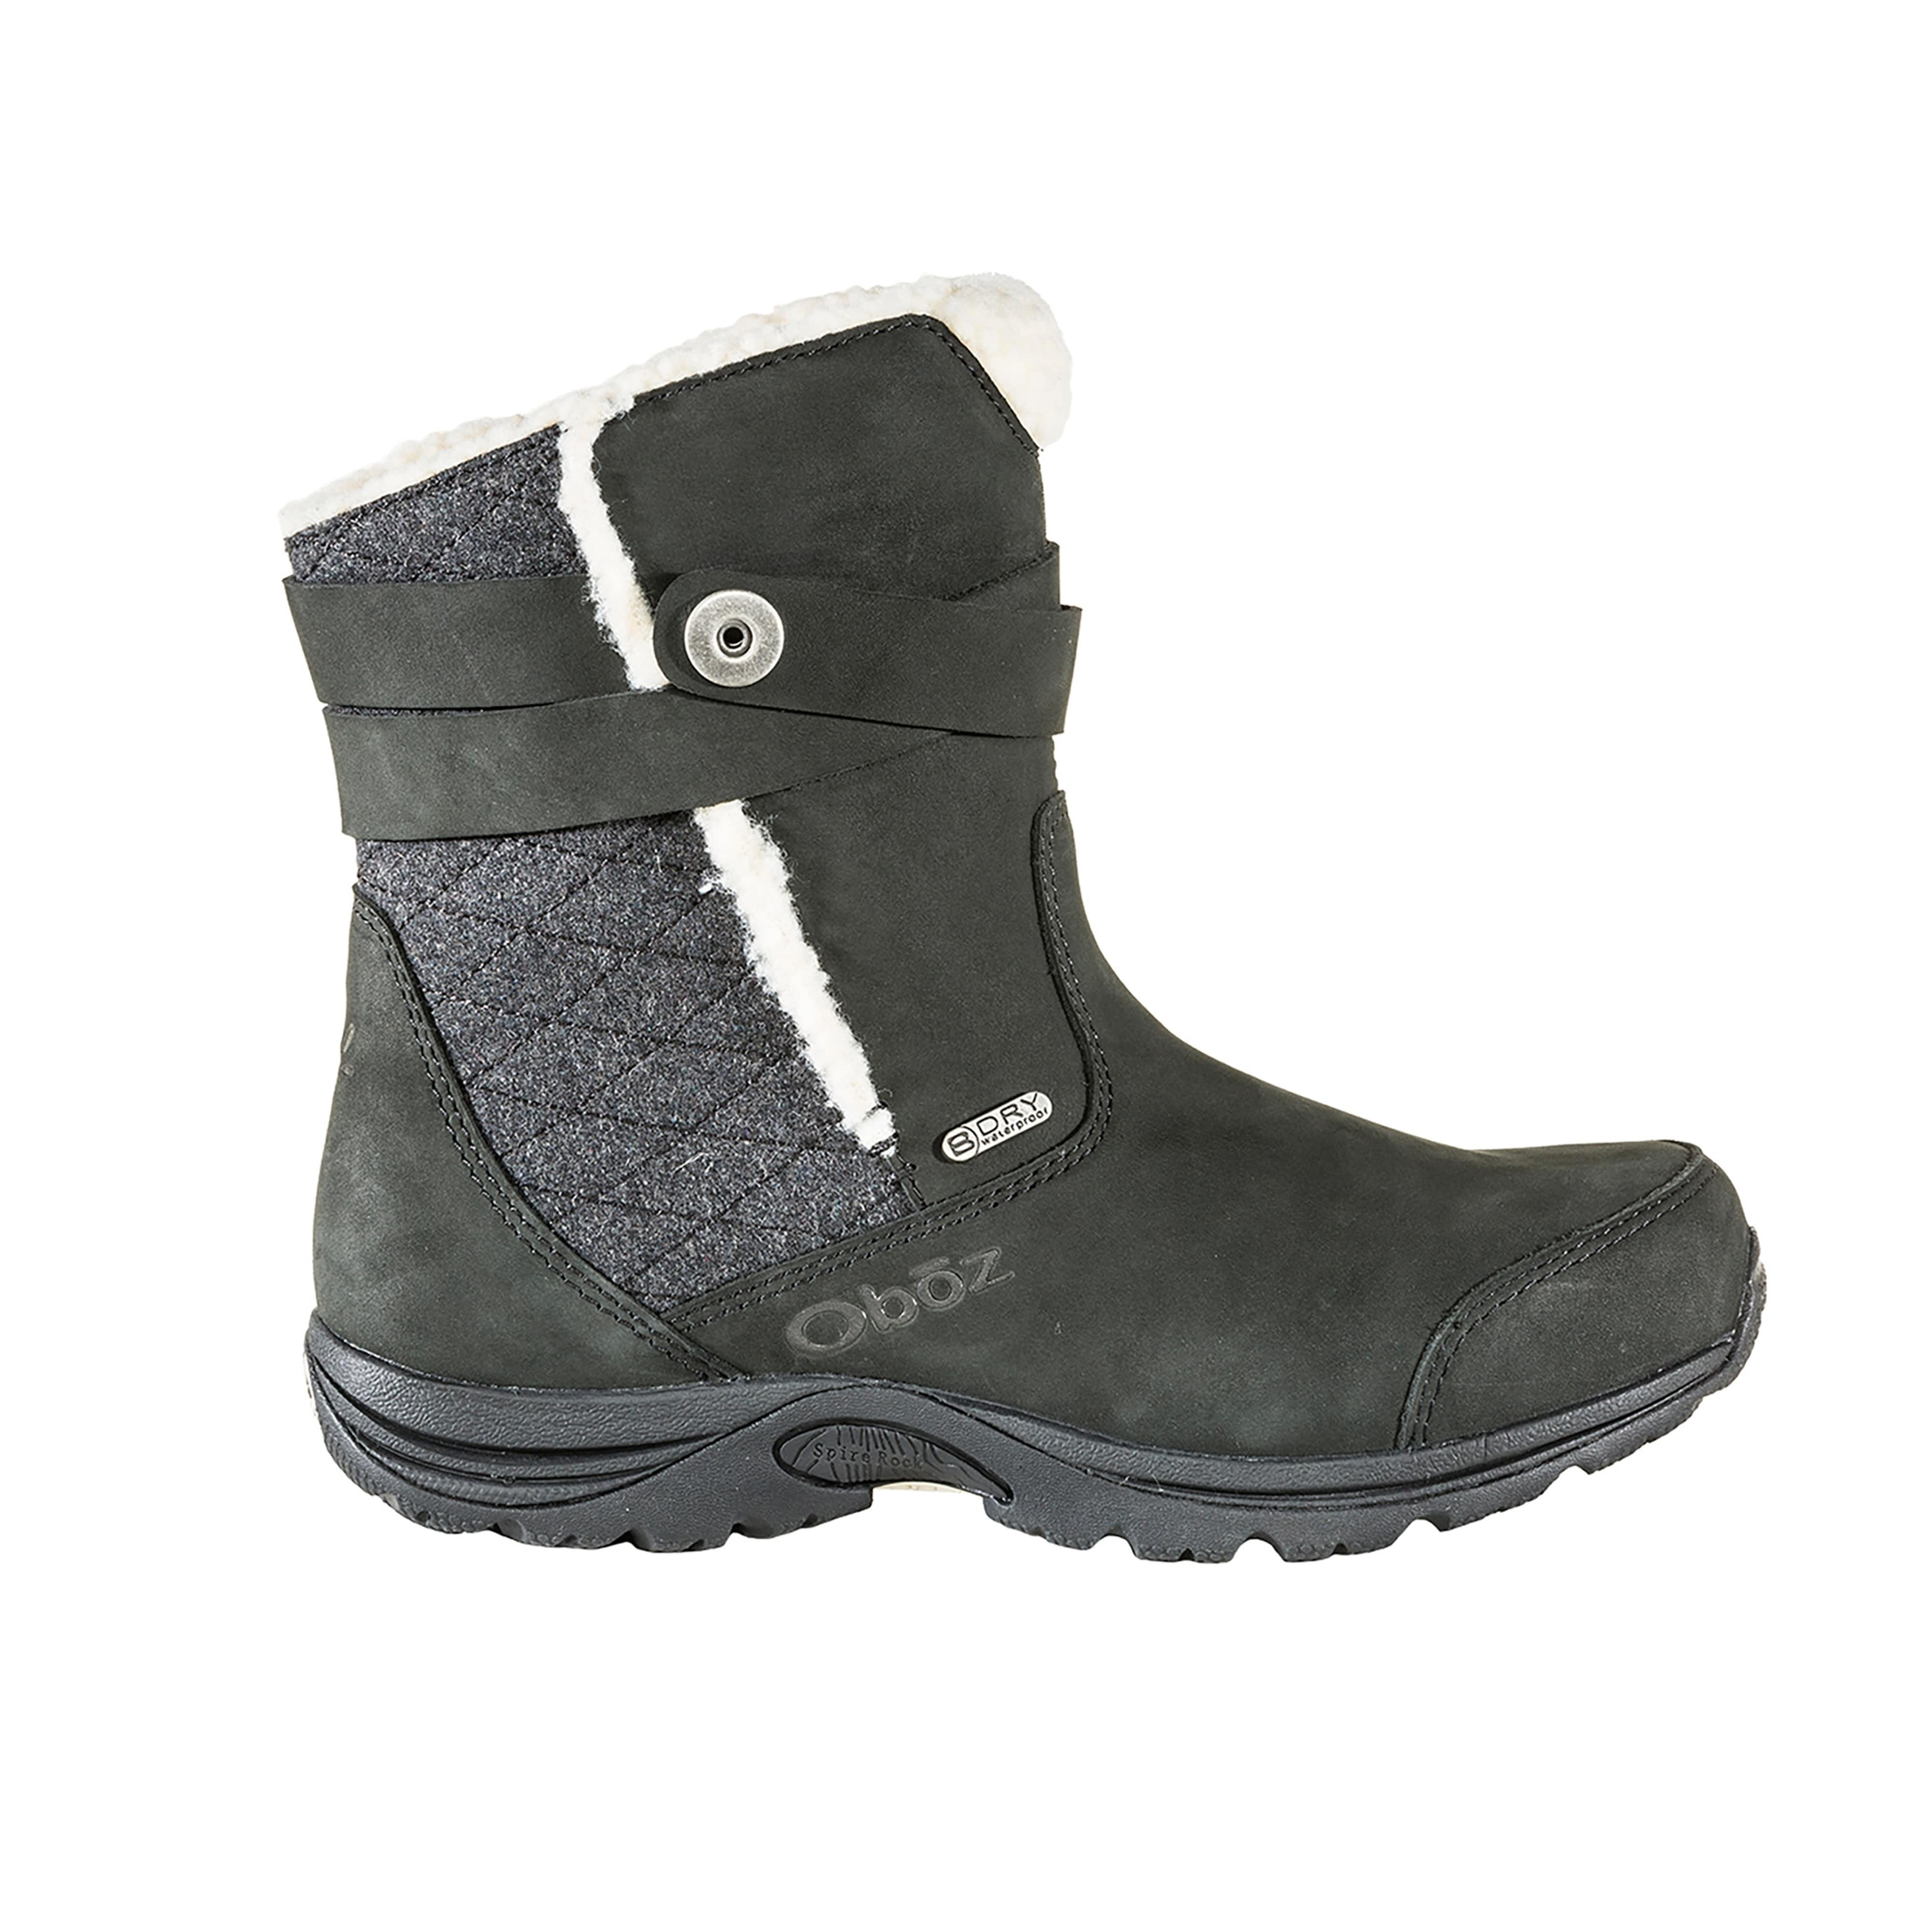 c4f1c400352 Womens Hiking & Outdoor Footwear | Kathmandu AU